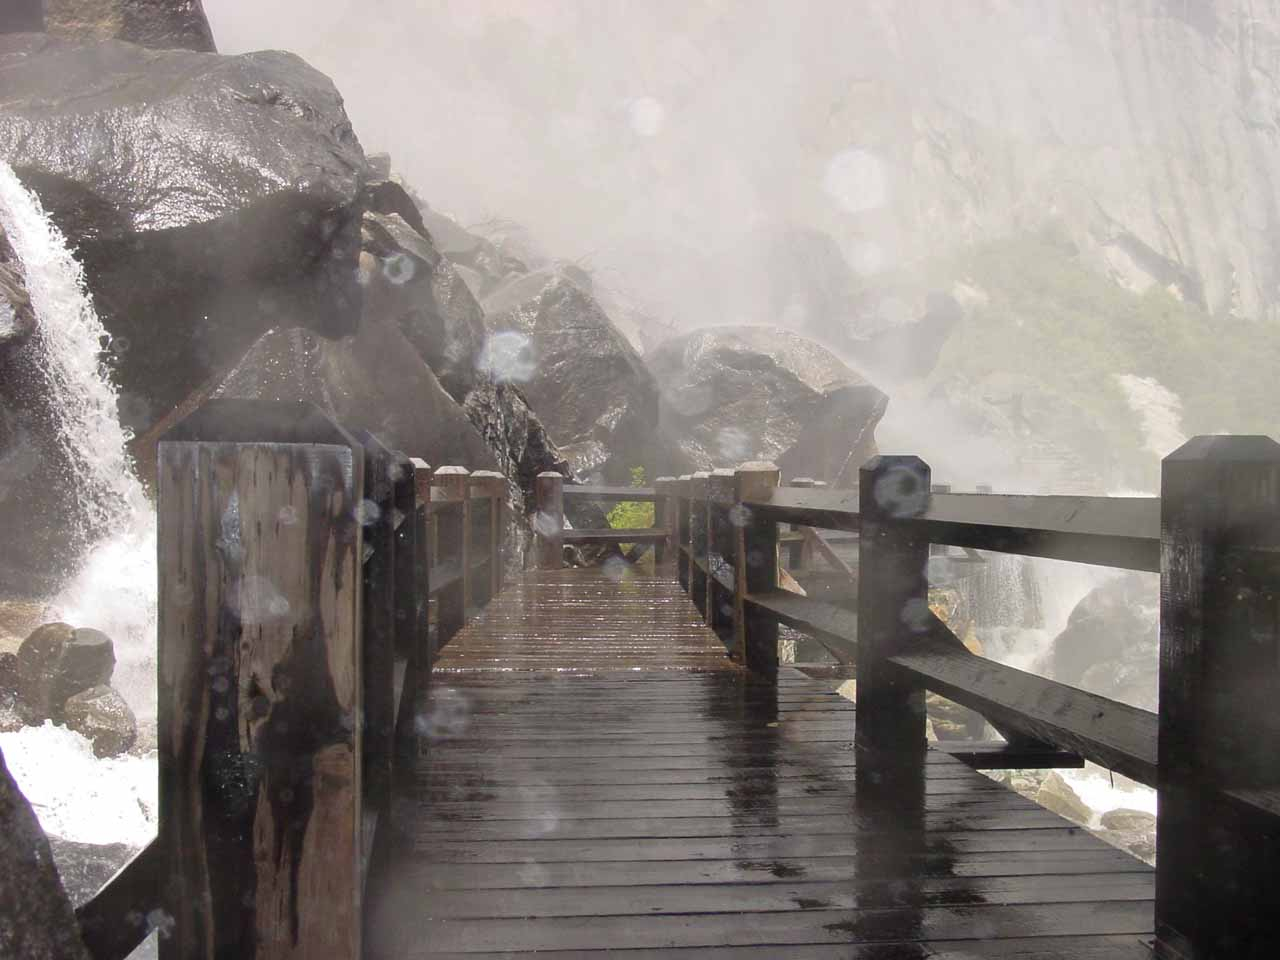 When Tueeuala Falls has high flow, this is probably what you will face at the Wapama Falls footbridges